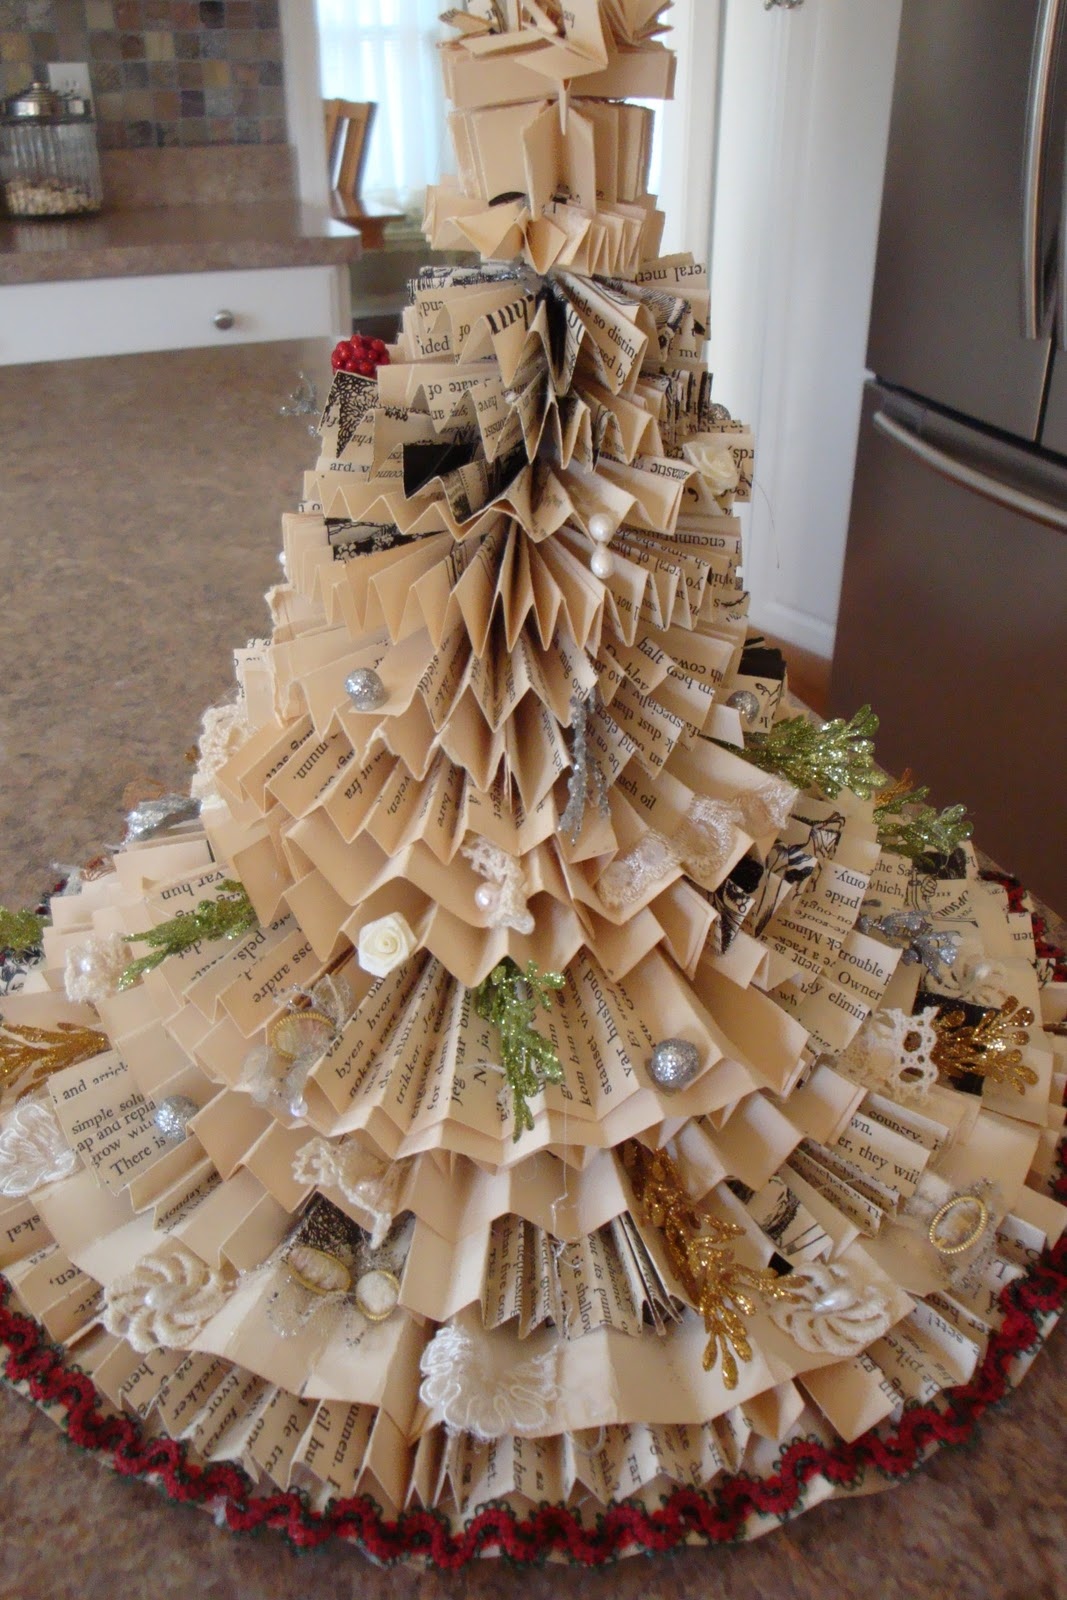 Christmas Decorations From Recycled Books